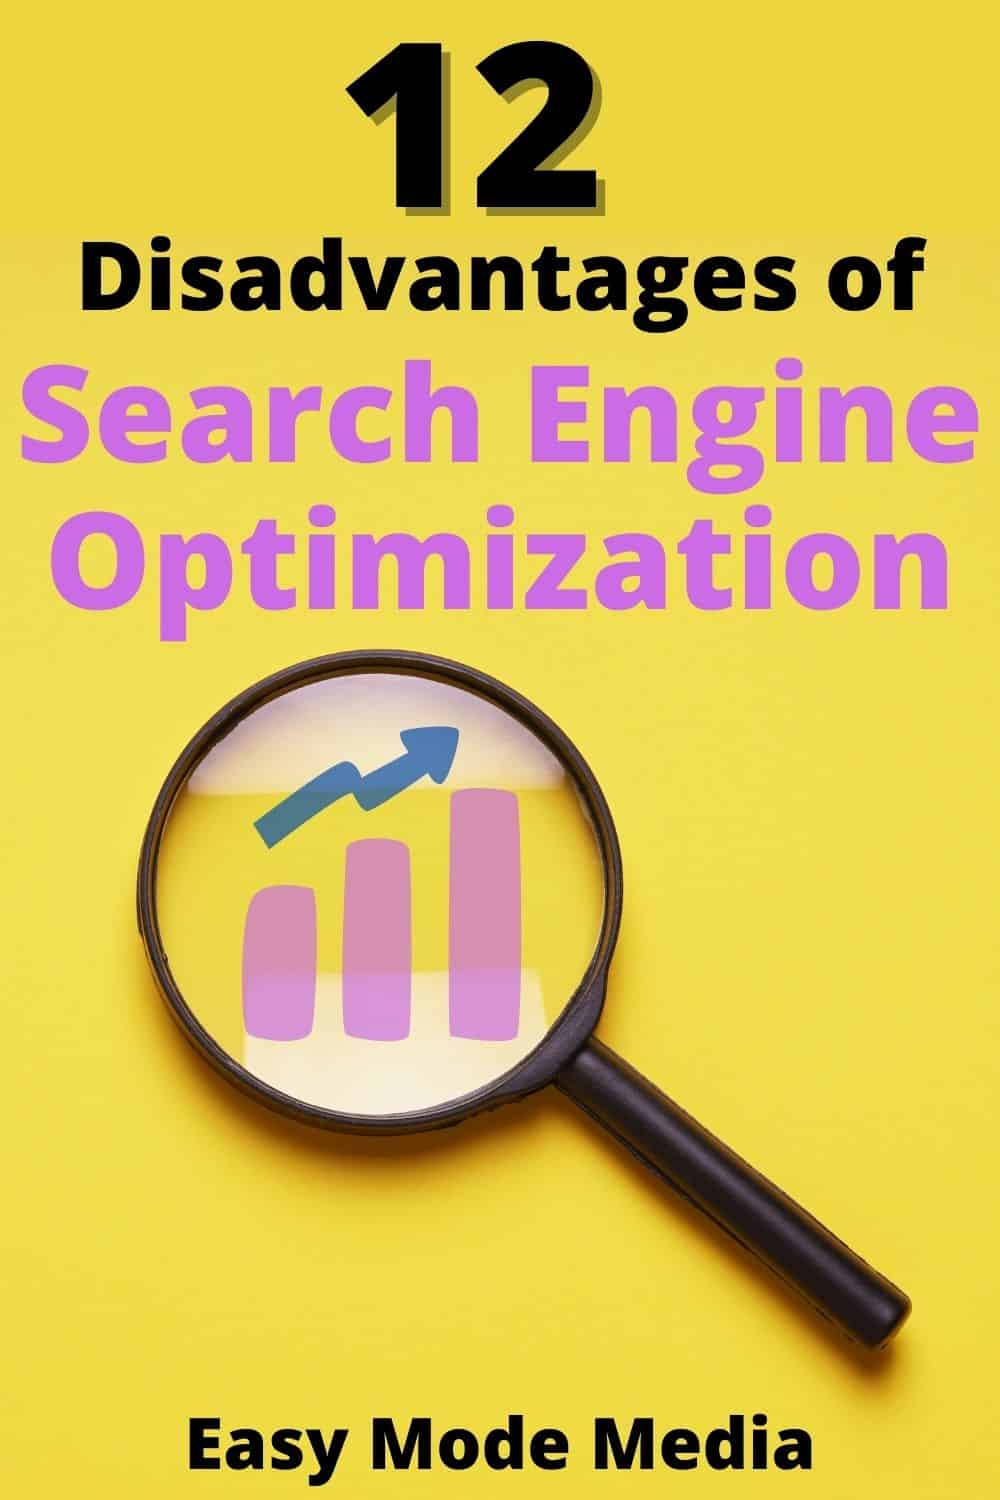 The 12 disadvantages to SEO and why they matter for you